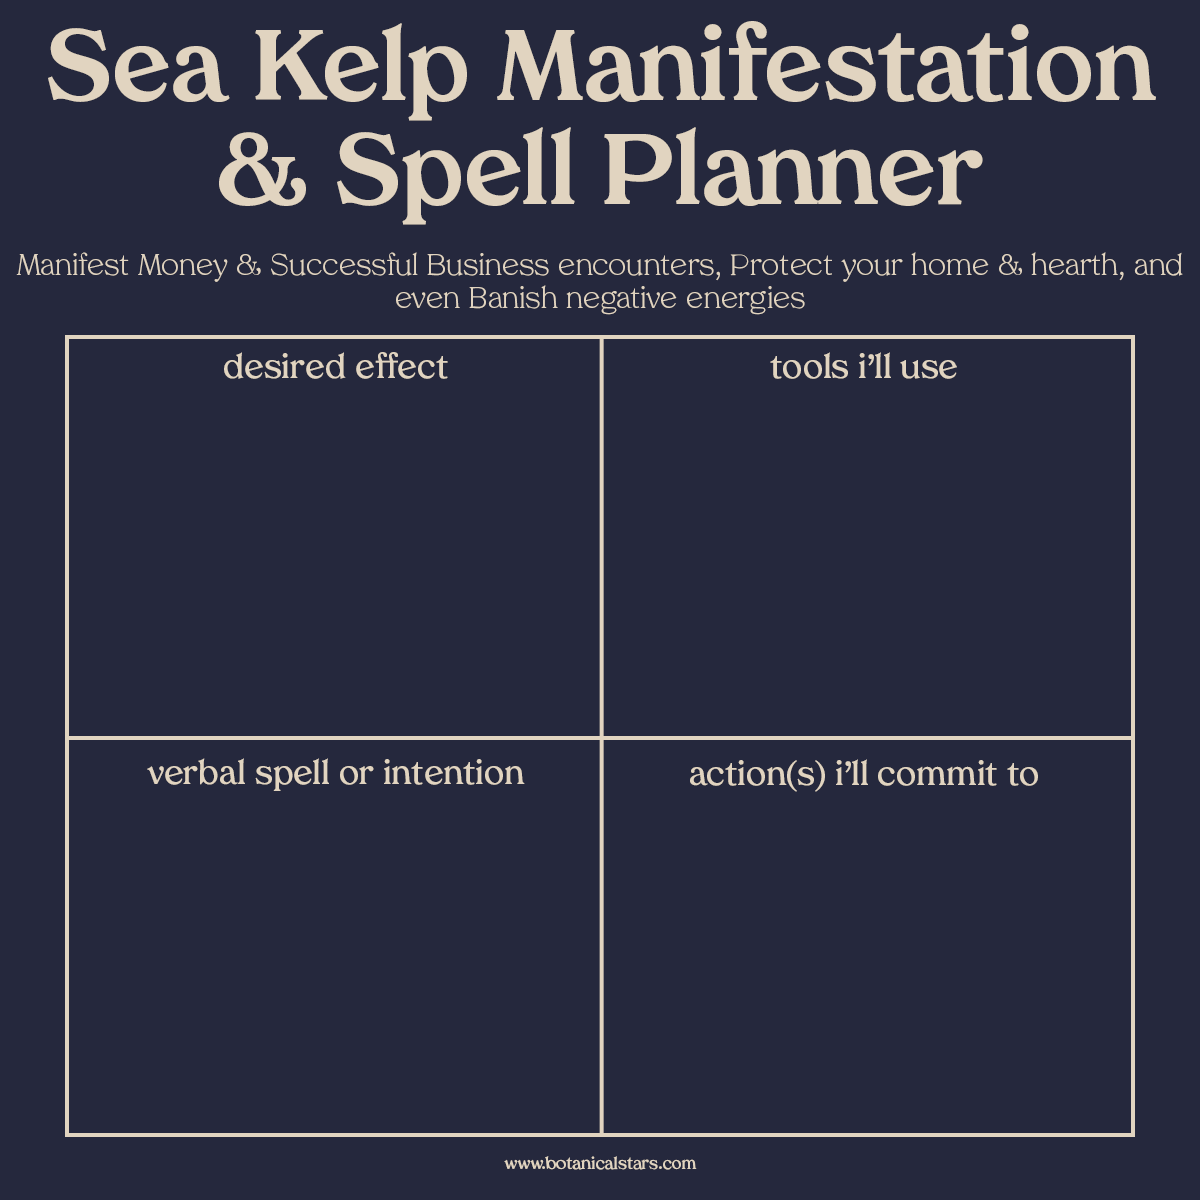 spell planner guide for manifesting and spell casting with sea kelp or bladderwack